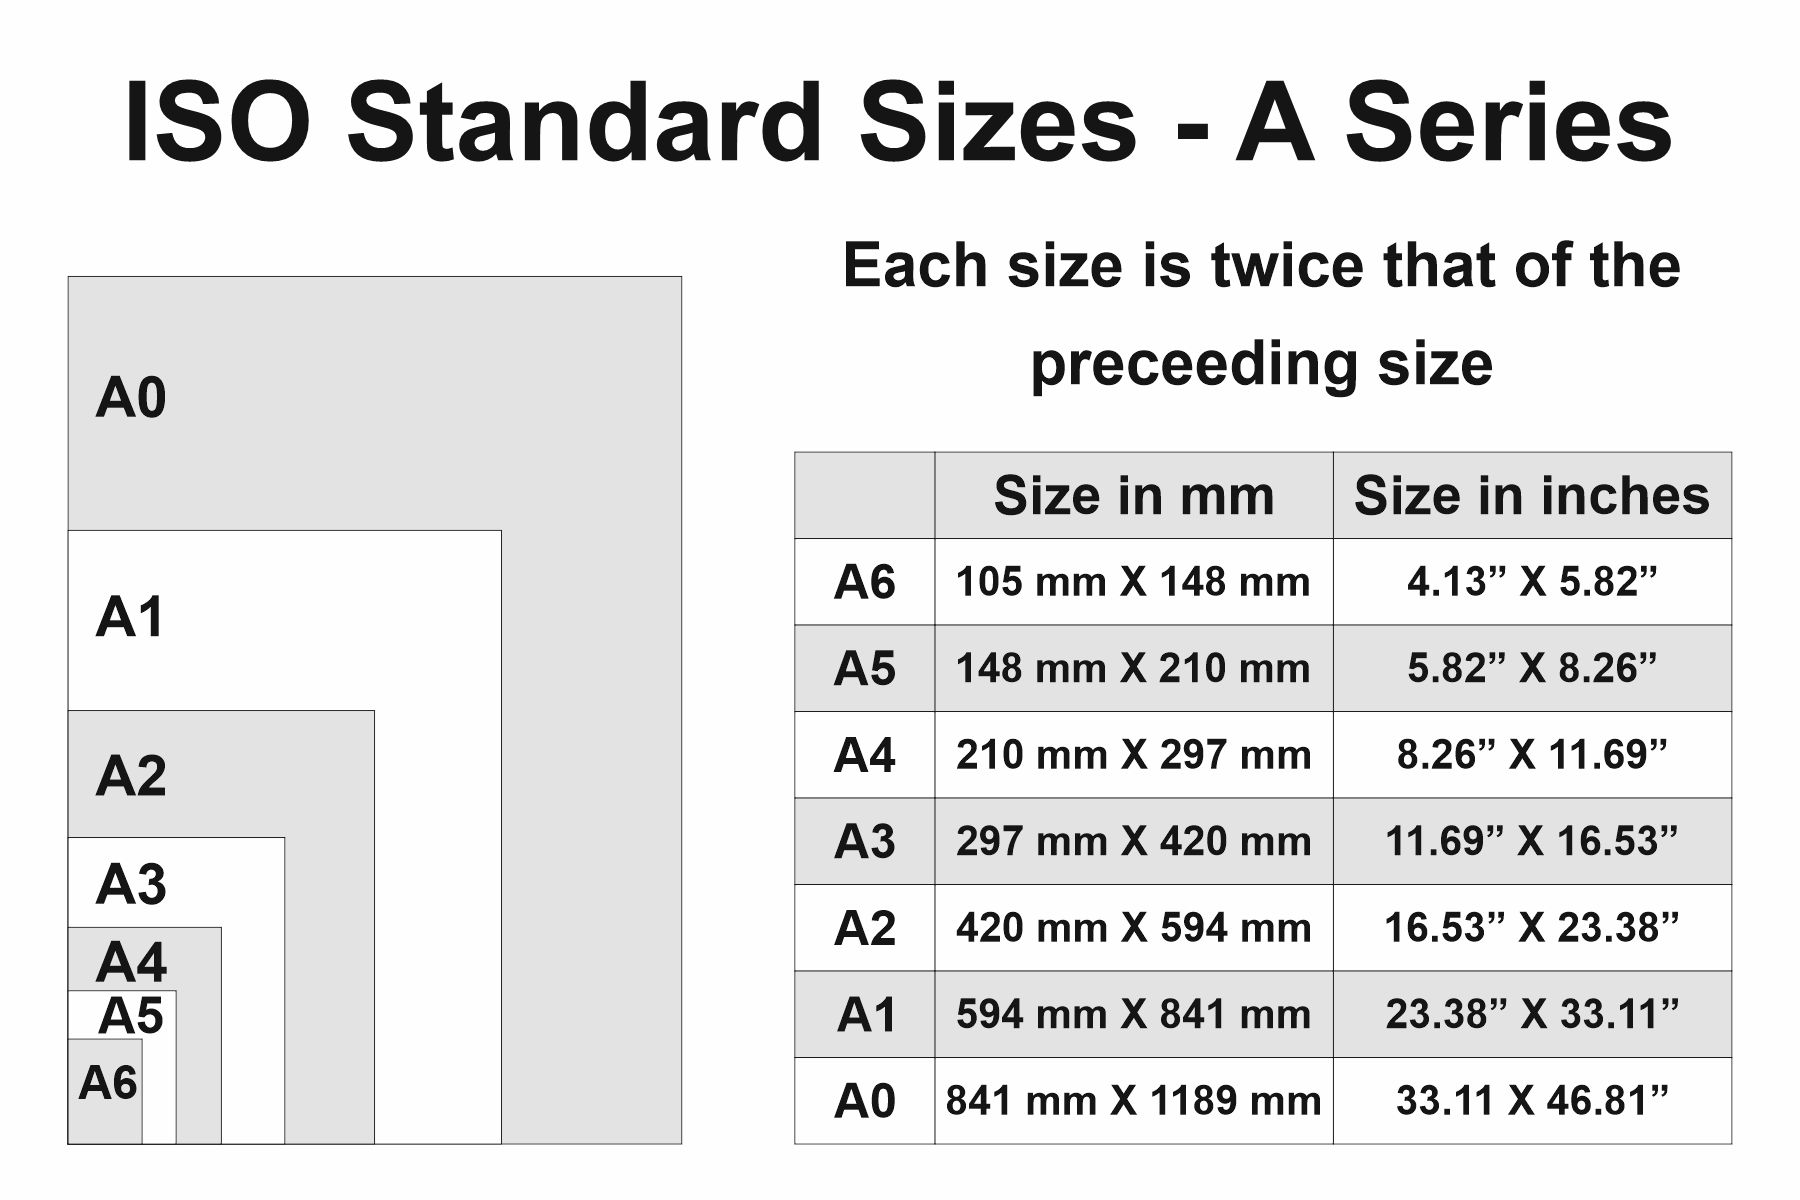 Chart showing all the sizes in the ISO A series including A6, A5, A4, A3, A2, A1 and A0. A table listing these sizes in mm and inches and showing how each size is twice that of the previous one.